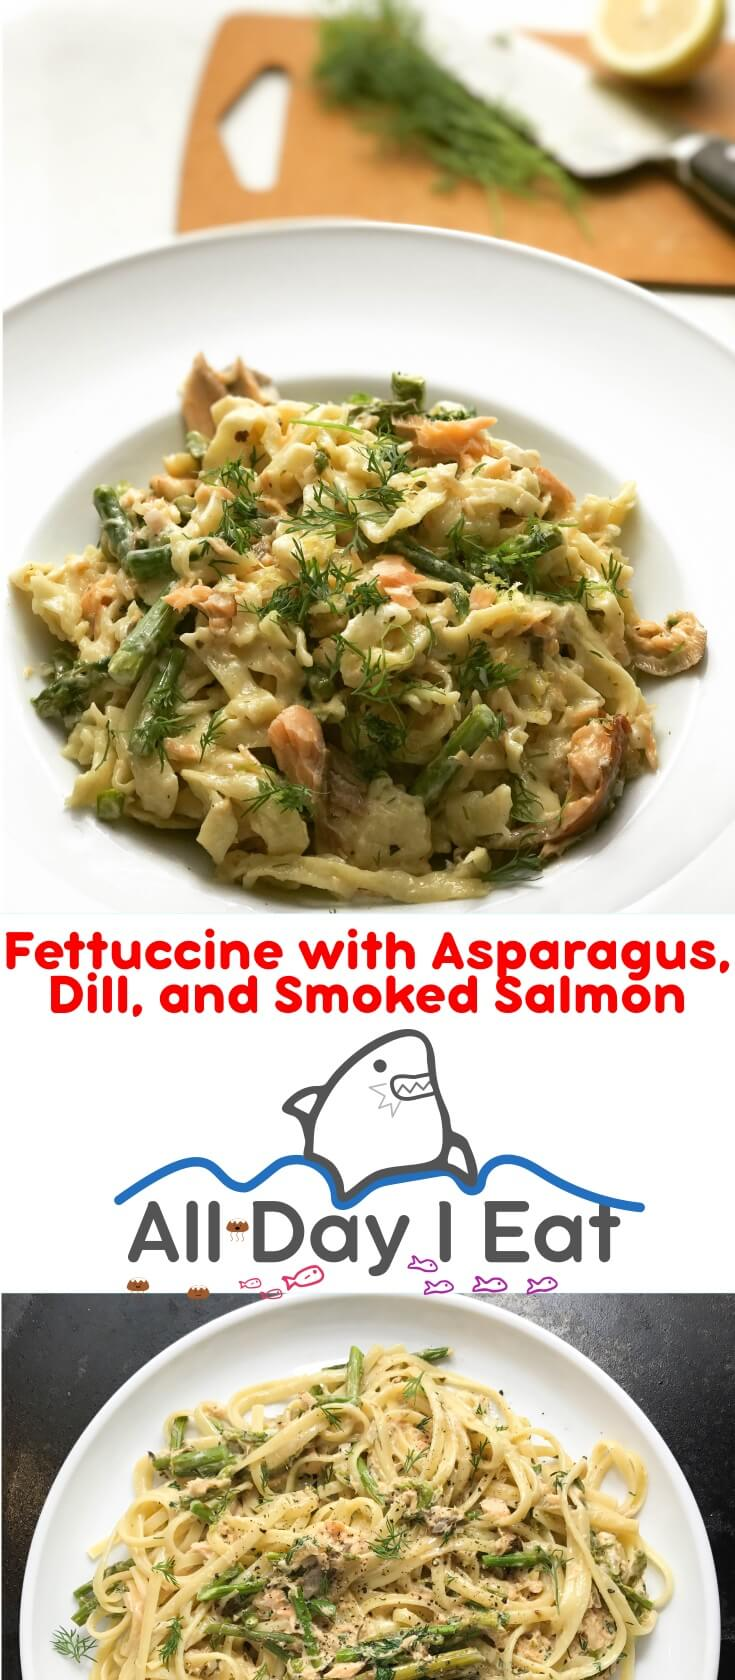 Fresh Fettuccine with Asparagus, Dill, and Smoked Salmon. A delicious and decadent way to enjoy salmon and asparagus. Cream, lemon and dill take this over the top and transform this pasta into edible magic. | www.alldayieat.com